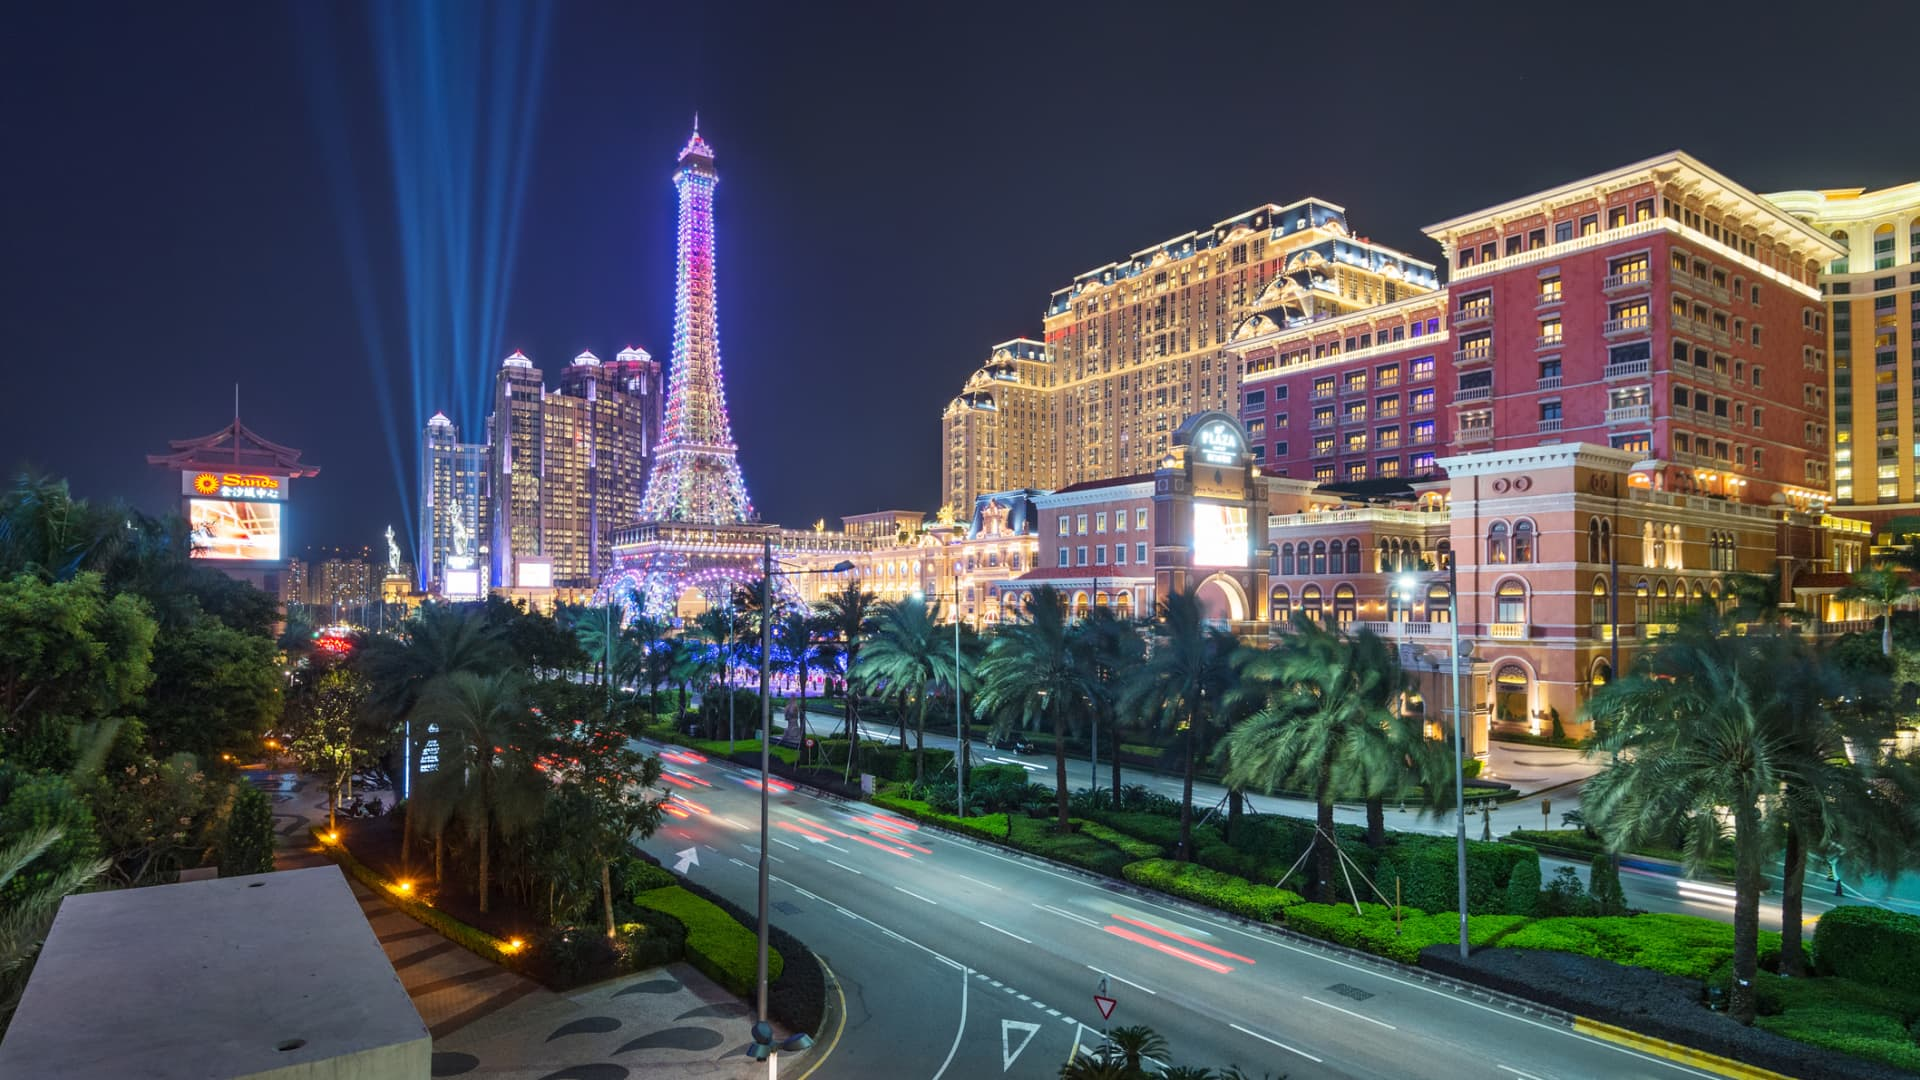 The Cotai Strip is located on the island of Cotai, a portmanteau reflecting the reclamation project that joined the two Macao islands of Coloane and Taipa in 2005.